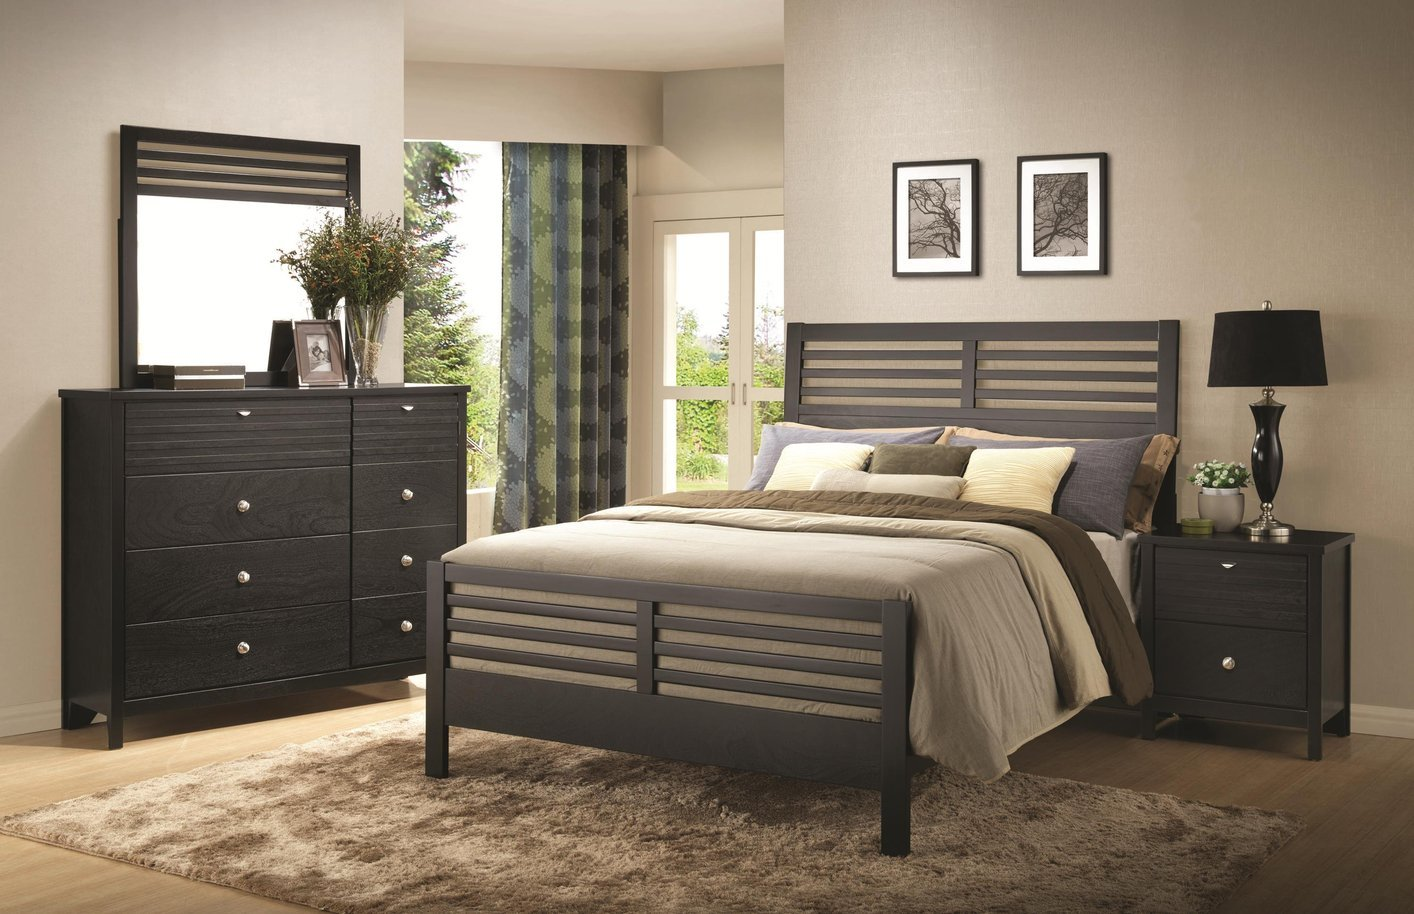 Black Wood California King Size Bed Steal A Sofa